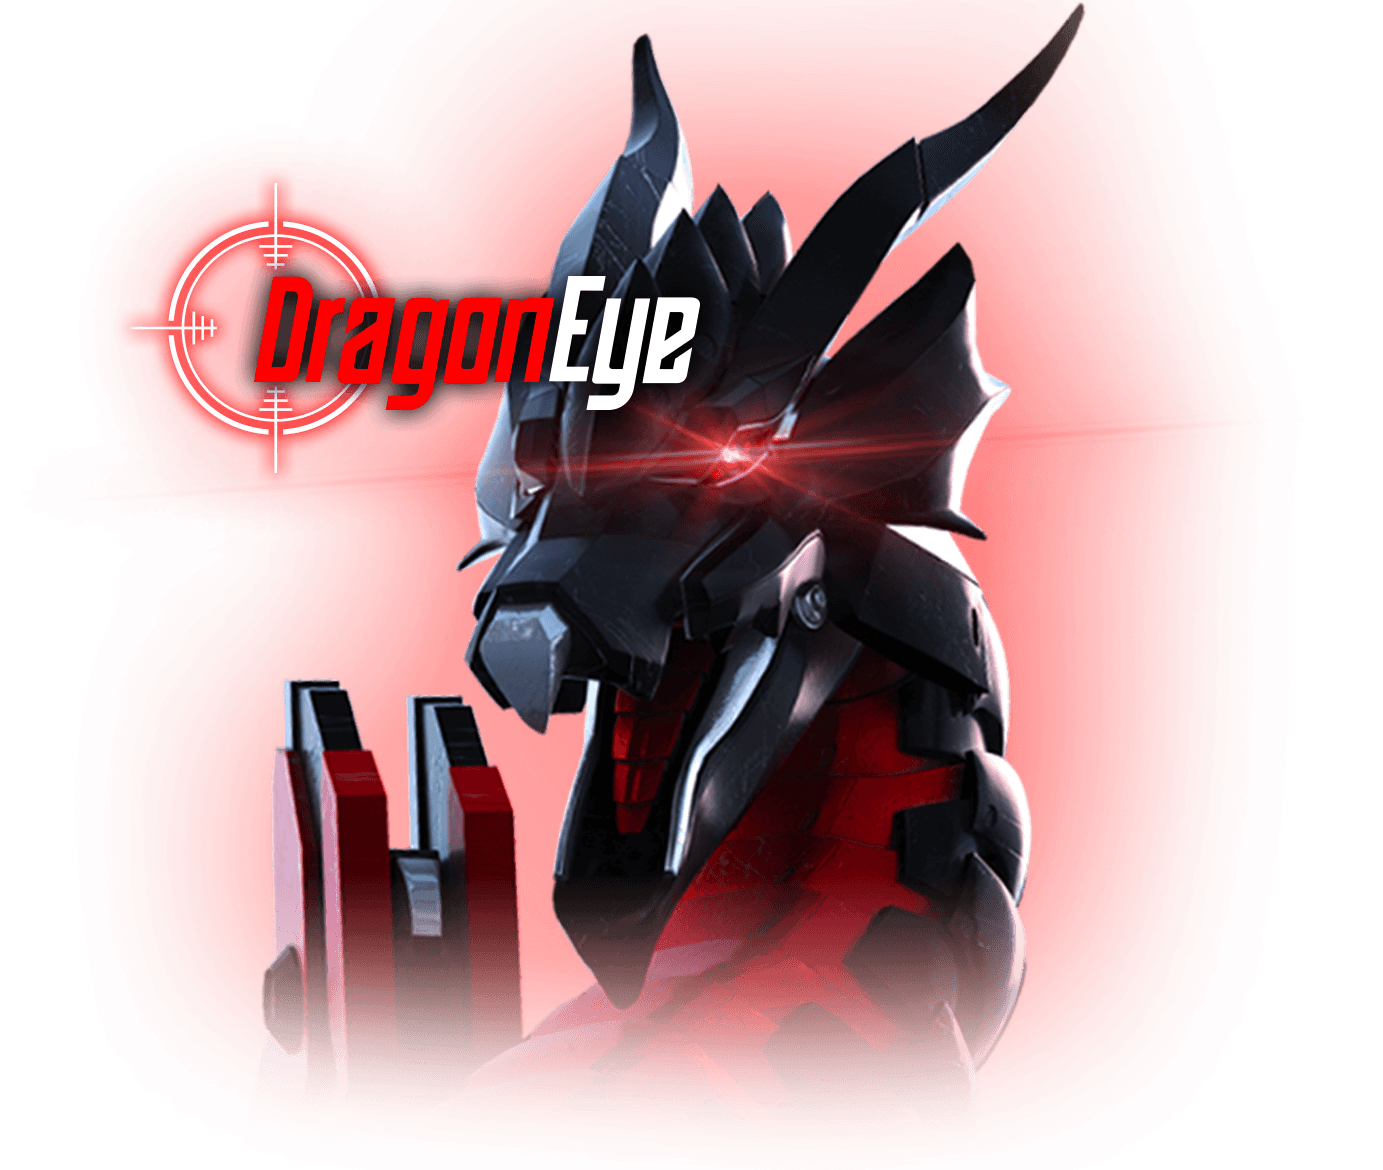 dragon-eye